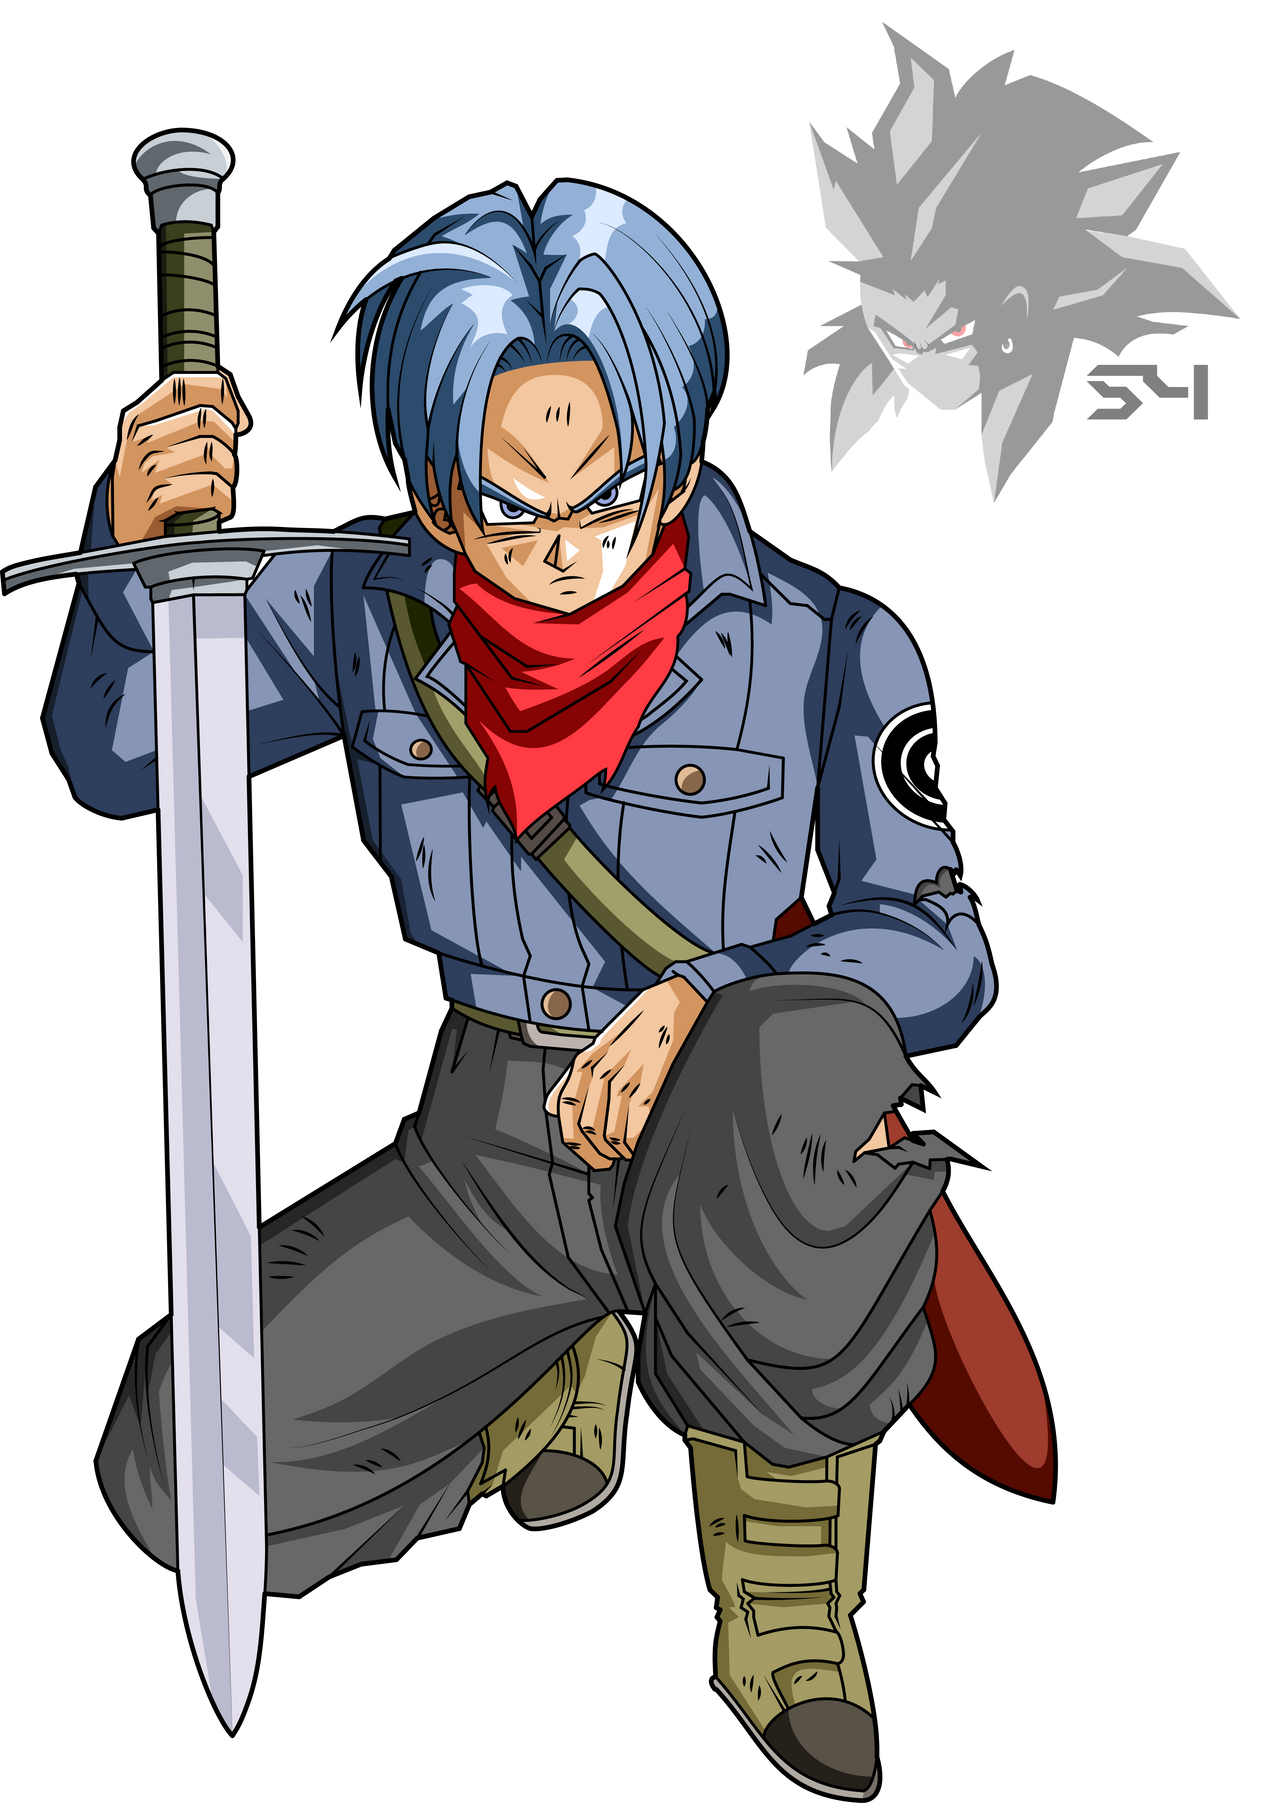 Future Trunks Dragon Ball Super By Mad 54 On Deviantart